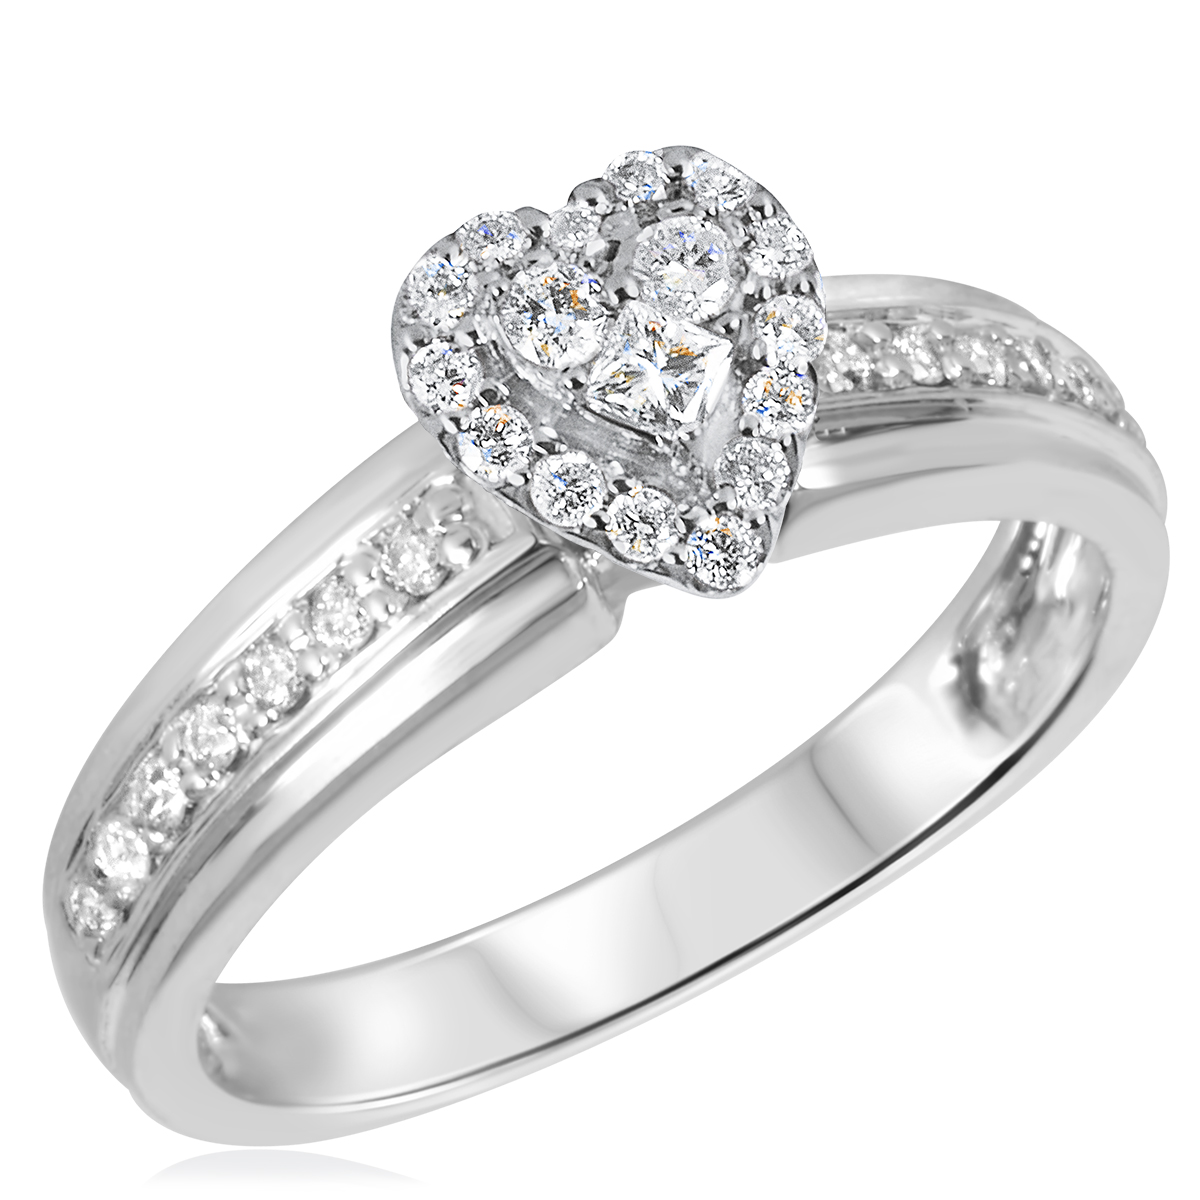 3/8 CT. T.W. Diamond Ladies Engagement Ring 14K White Gold